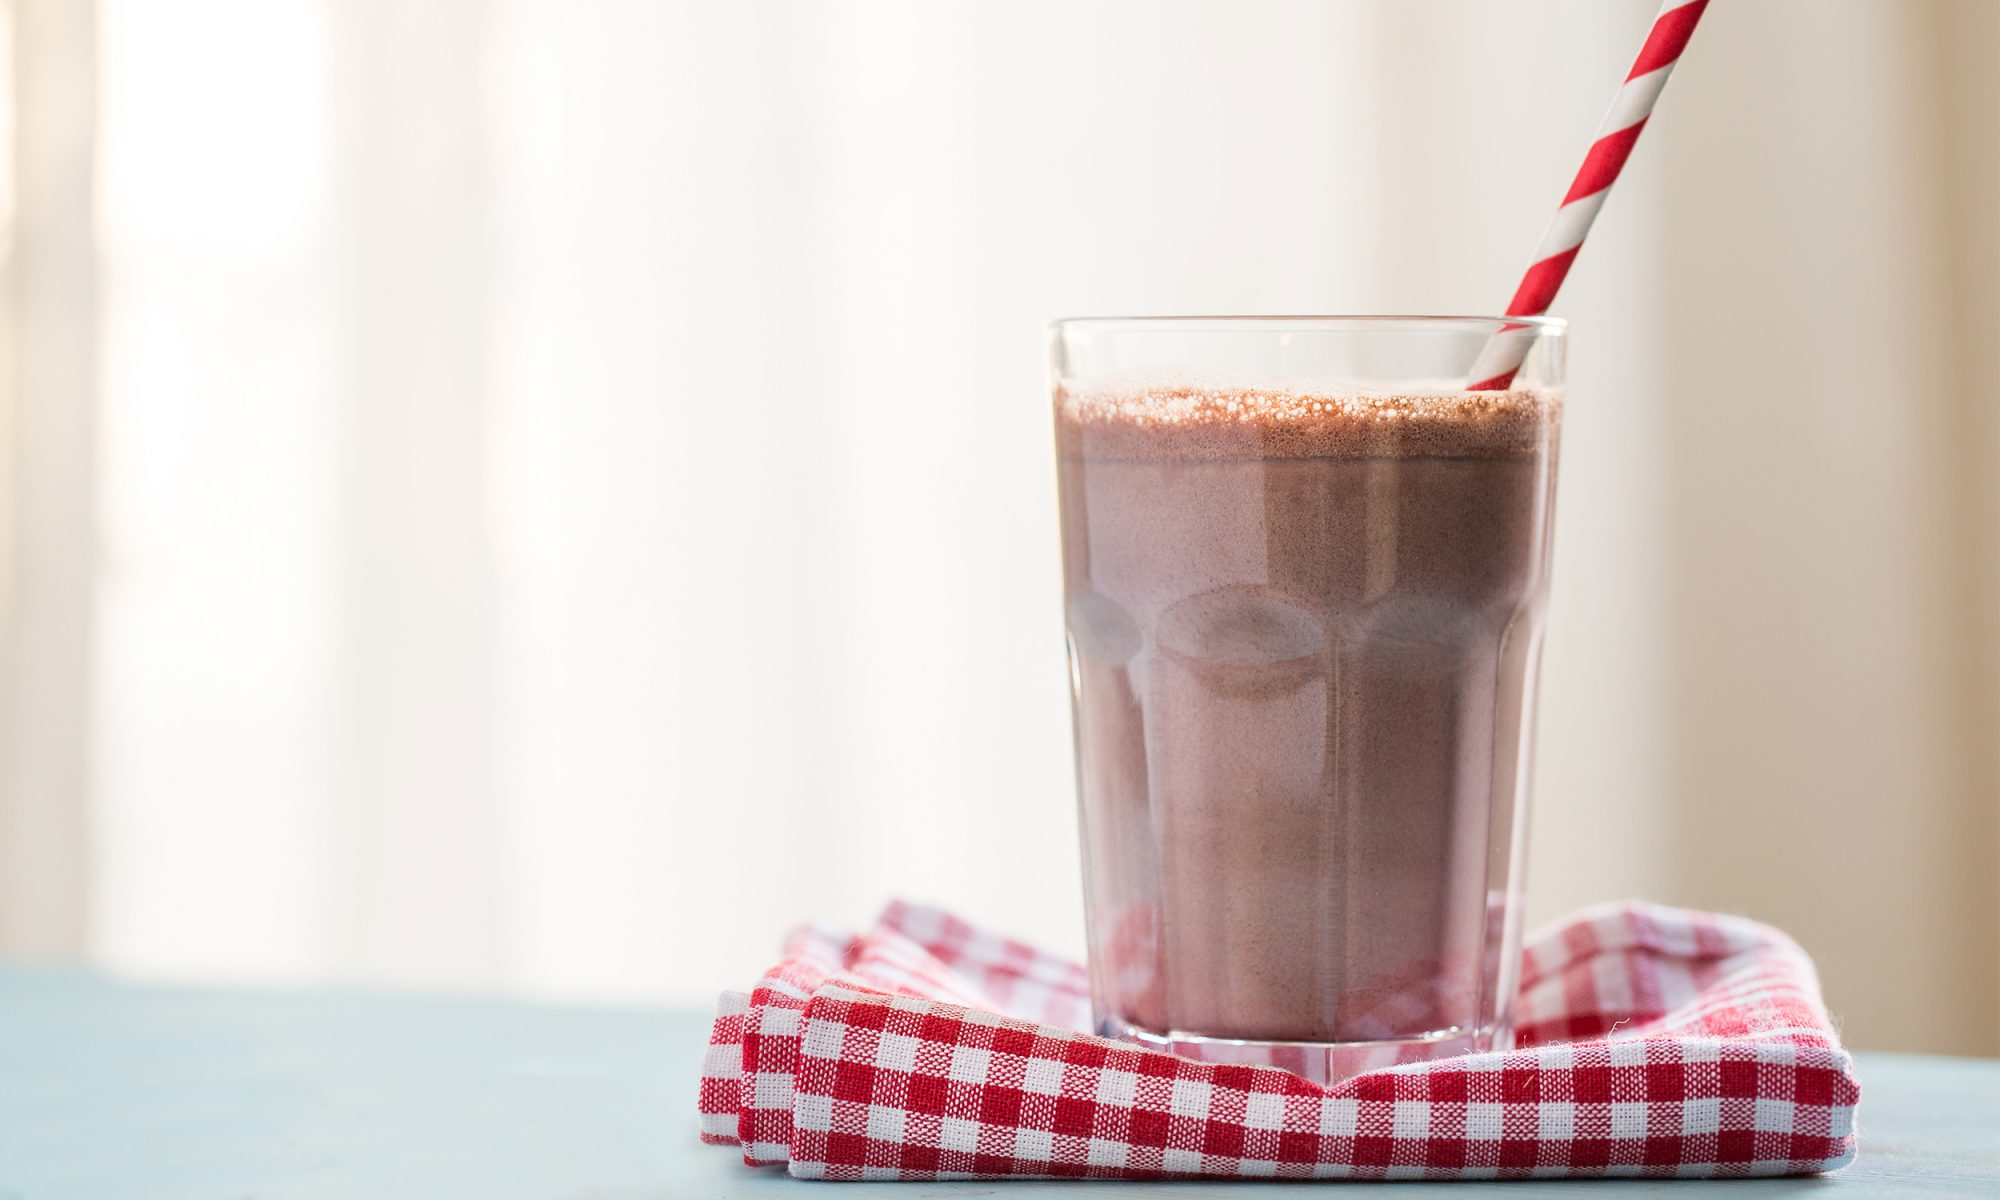 EC: Chocolate Shake vs. Chocolate Malt: What's the Difference?